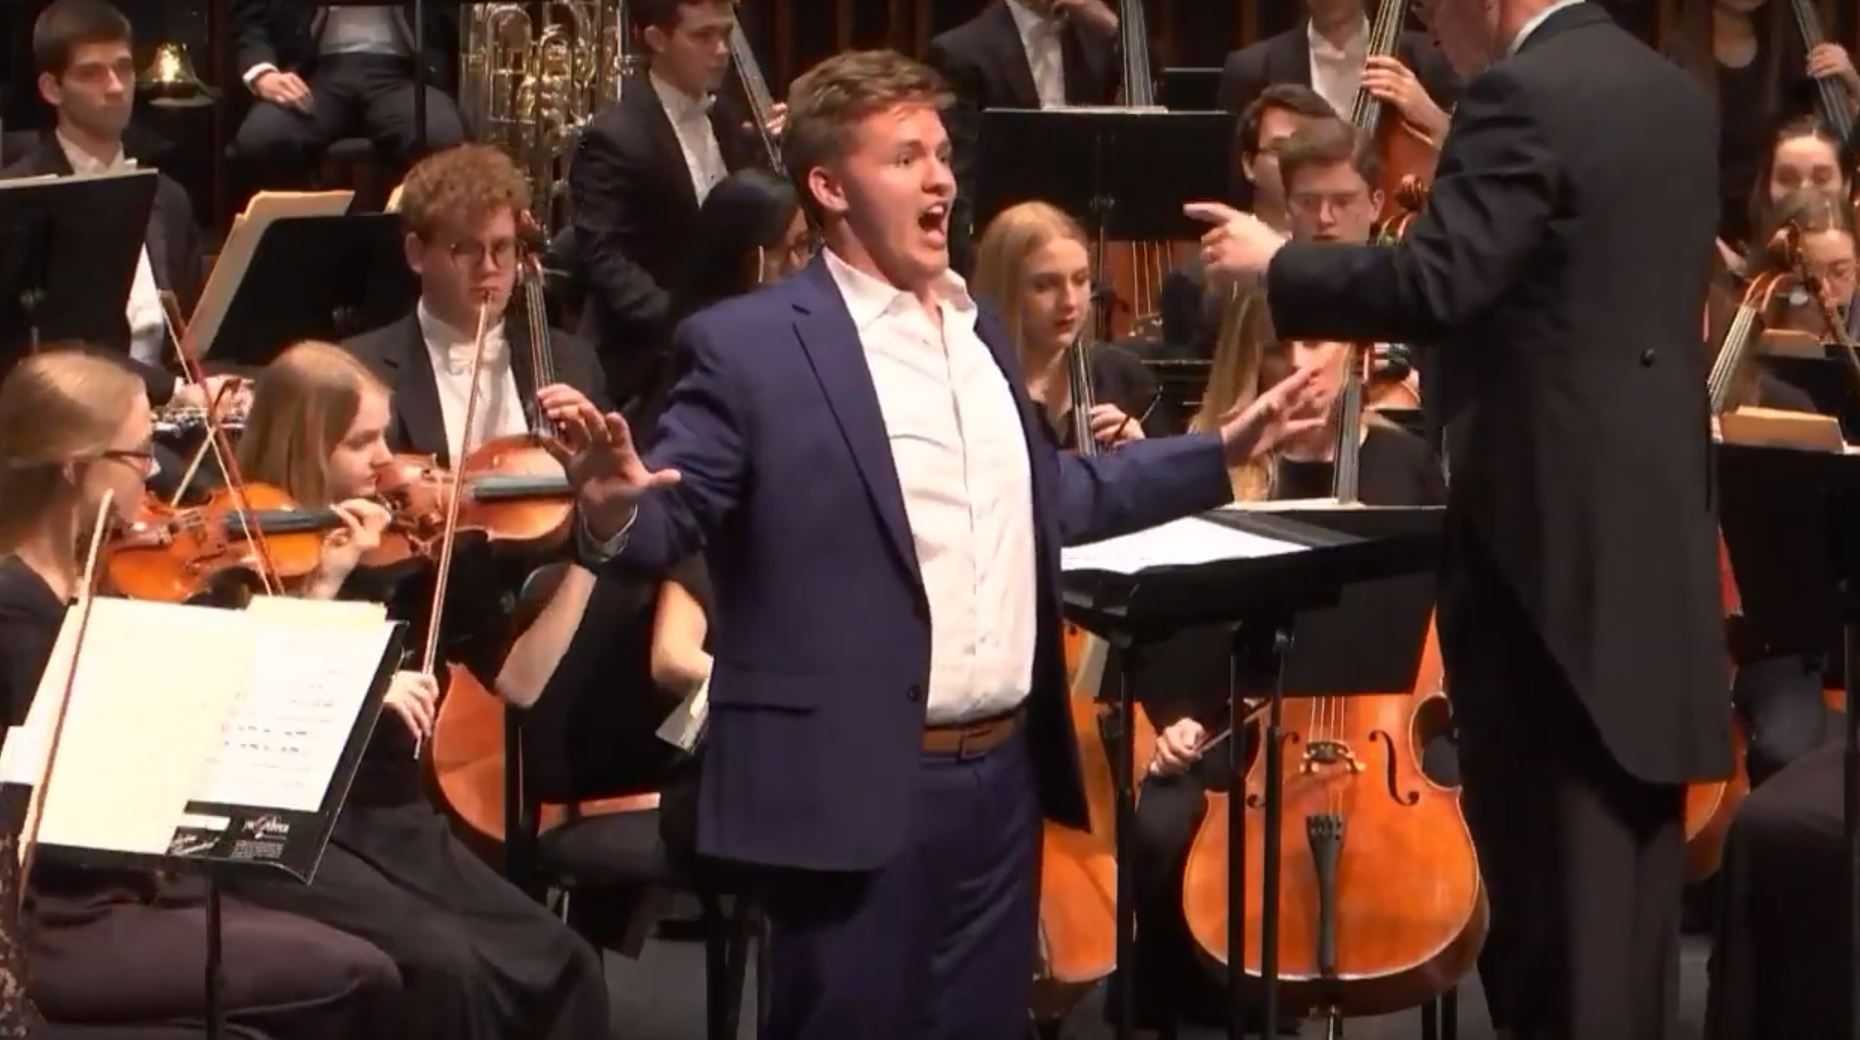 Latter-day Saint opera singer Jonah Hoskins sings with the BYU Philharmonic Orchestra.